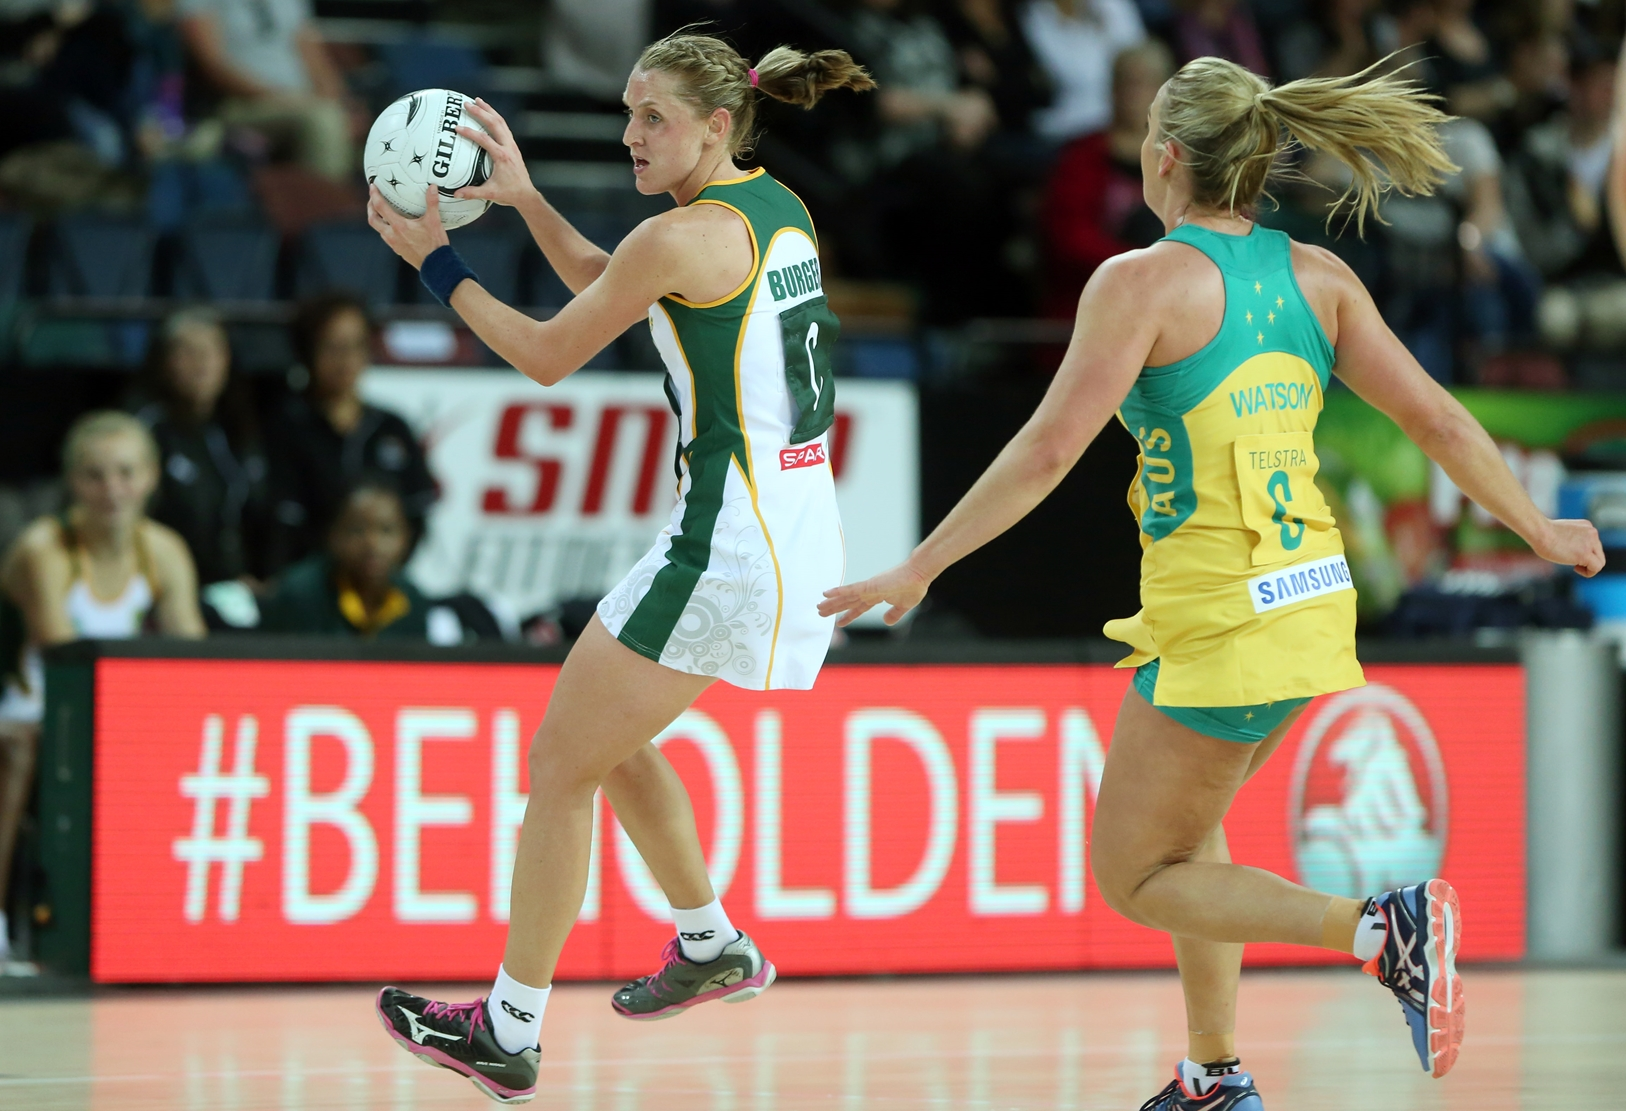 High praise for Proteas as they get set for Silver Ferns